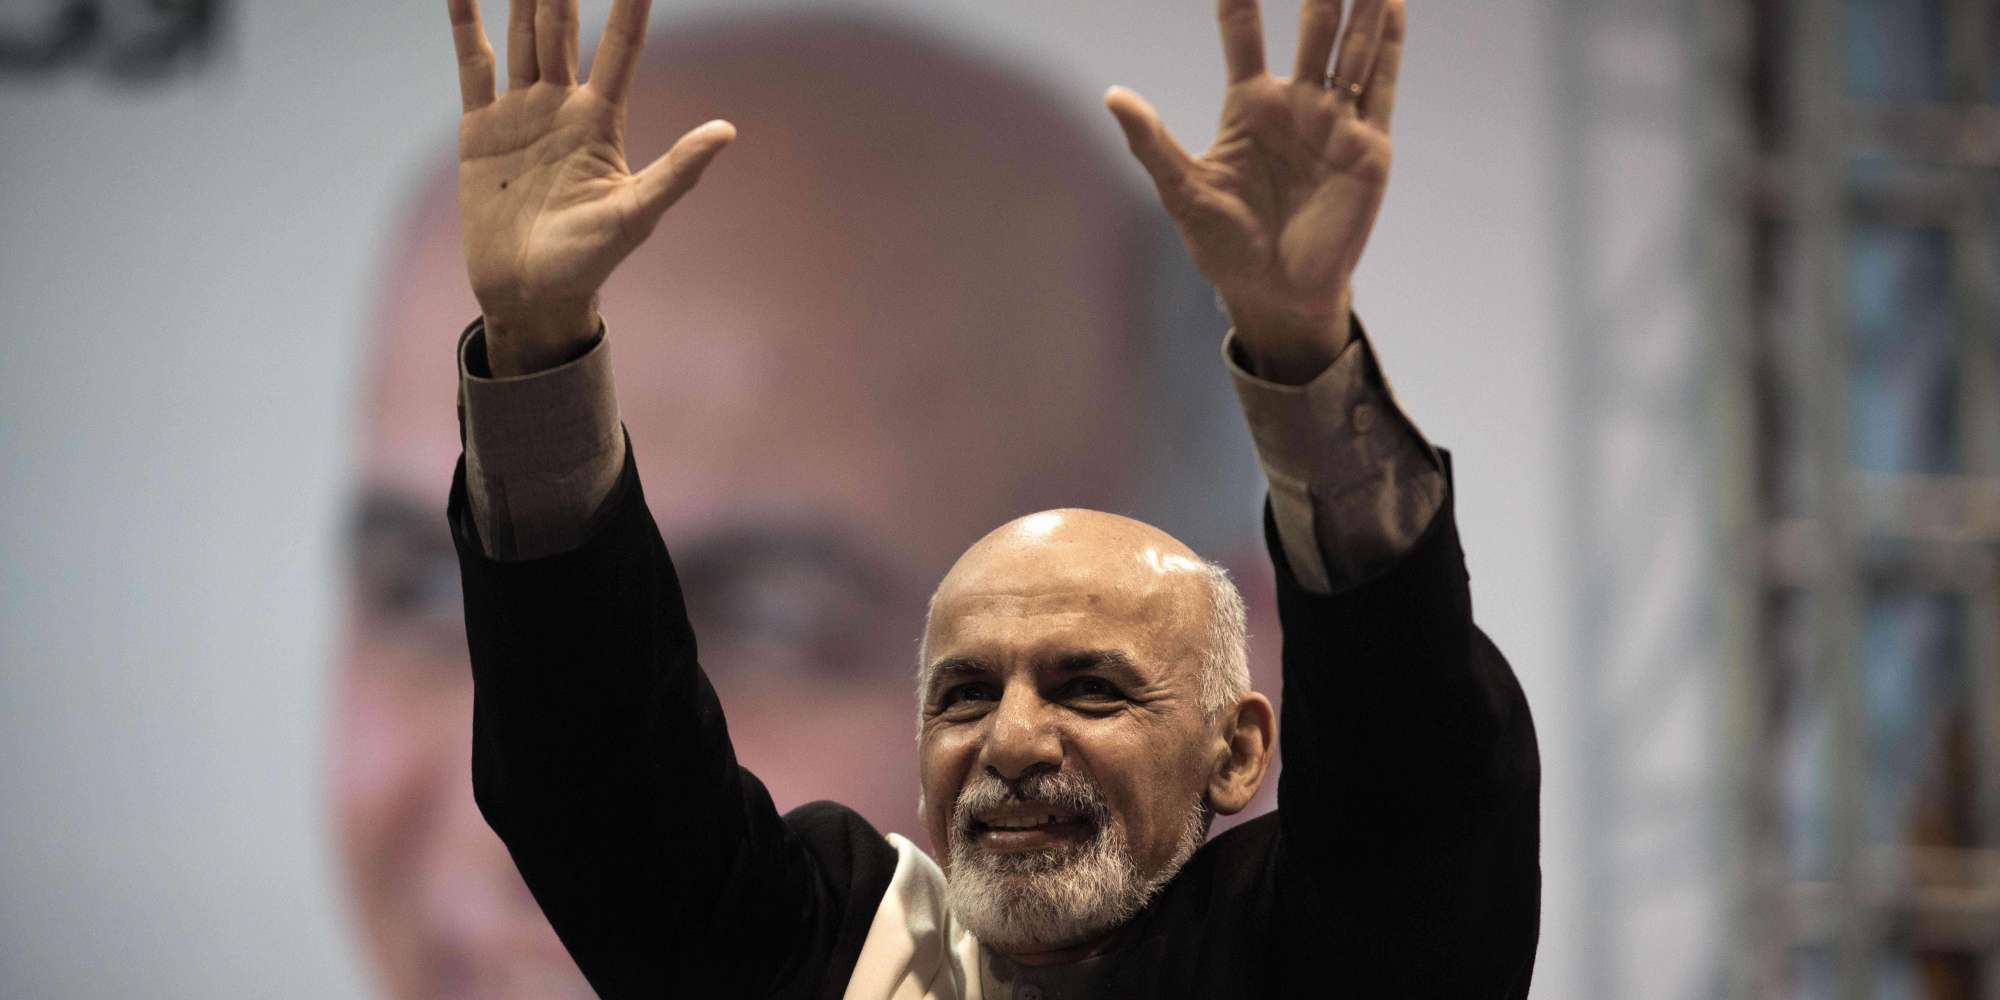 ashraf ghani quot we will be victorious in the second round are you ready for victory quot photo reuters file